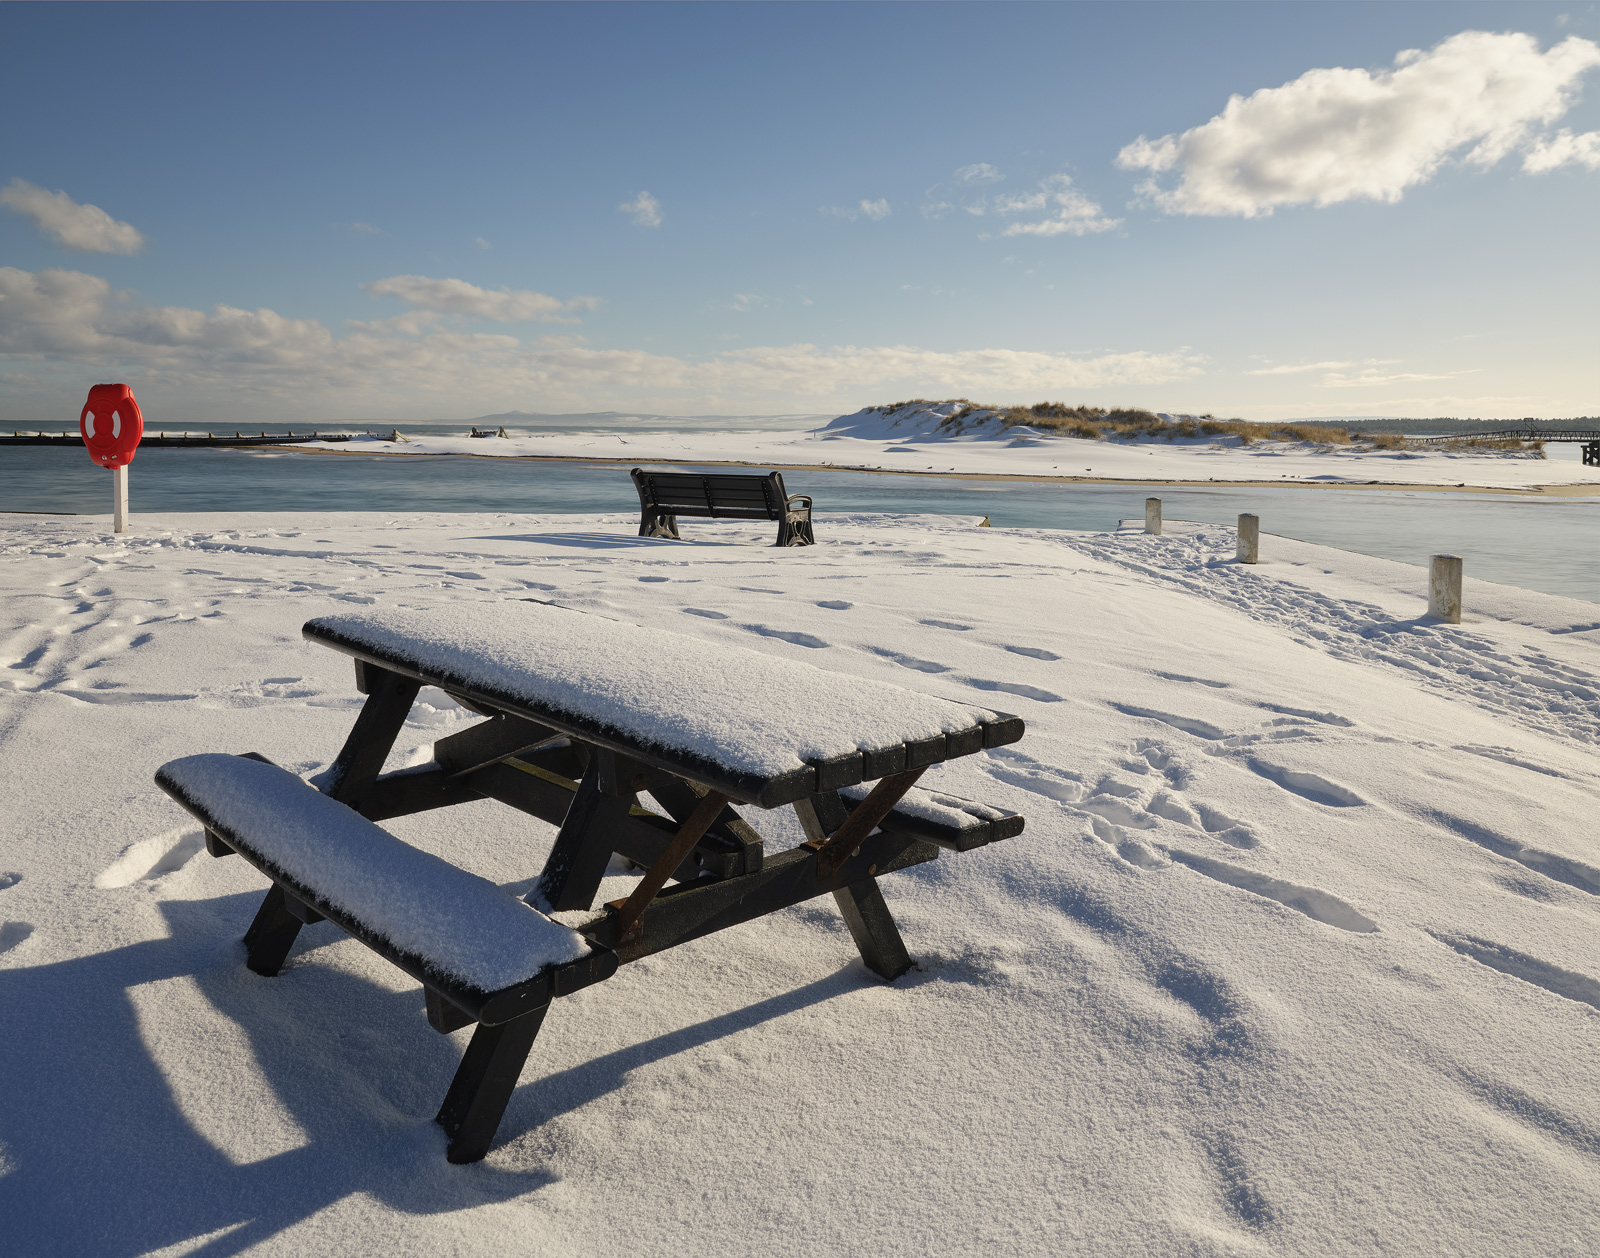 Vacant Picnic Lossiemouth, Lossiemouth, Moray, Scotland, benches, seats, sandy, beach, quayside, crisp, bright, winter, snow, dunes,  , photo